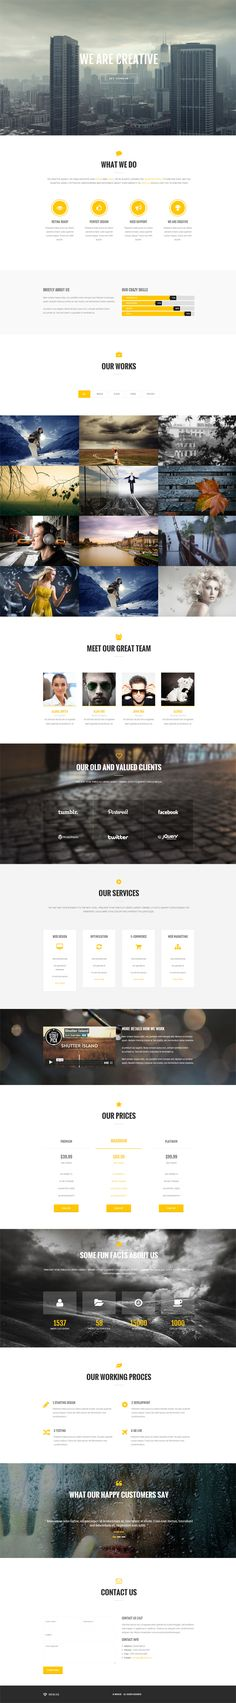 Oriolus - Responsive Onepage WordPress Theme ***TOO MUCH ANIMATION***